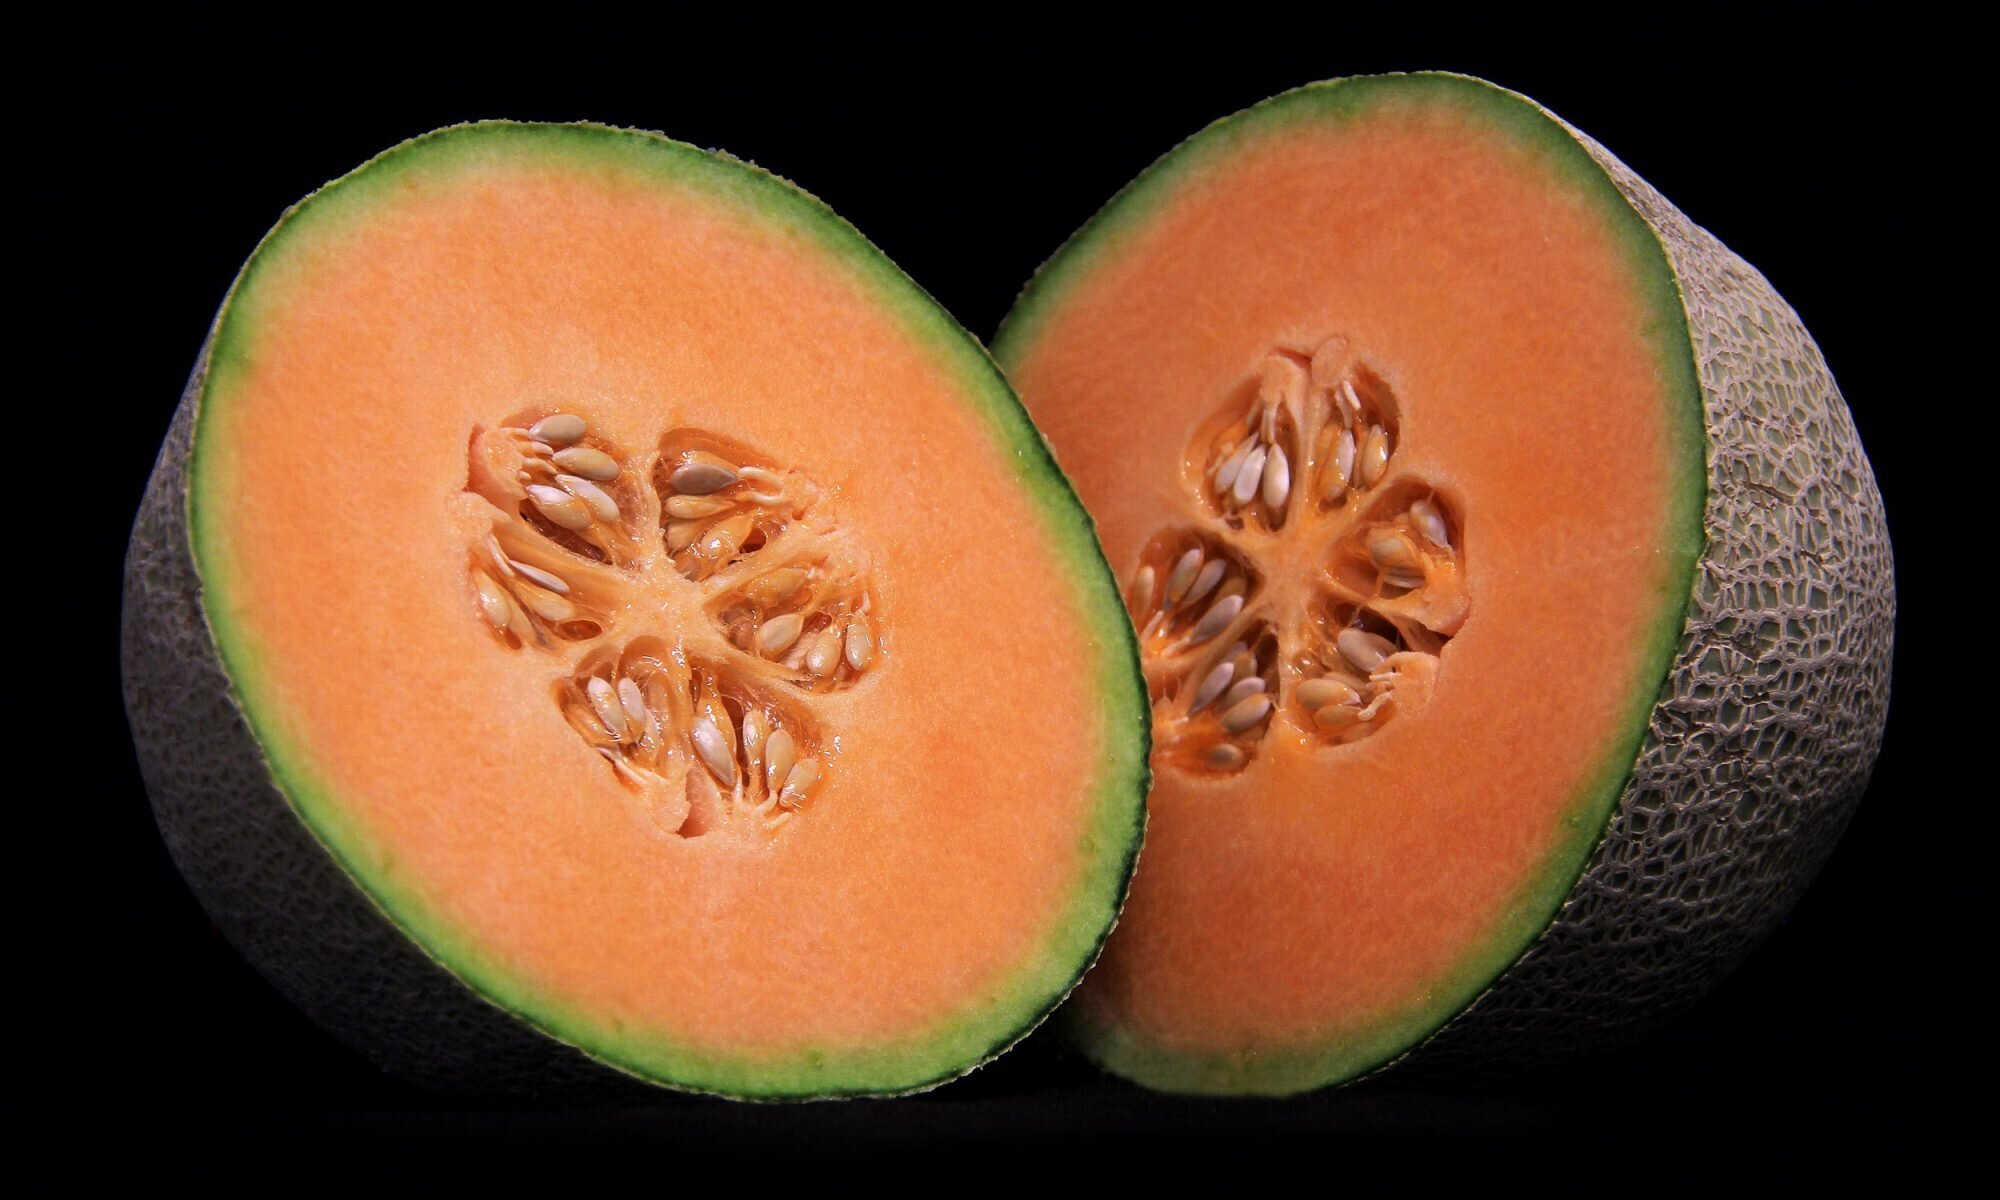 American Cantaloupes Are Not Real Cantaloupes Myrecipes The cantaloupe, rockmelon (australia and new zealand), sweet melon, or spanspek (south africa) is a melon that is a variety of the muskmelon species (cucumis melo) from the family cucurbitaceae. american cantaloupes are not real